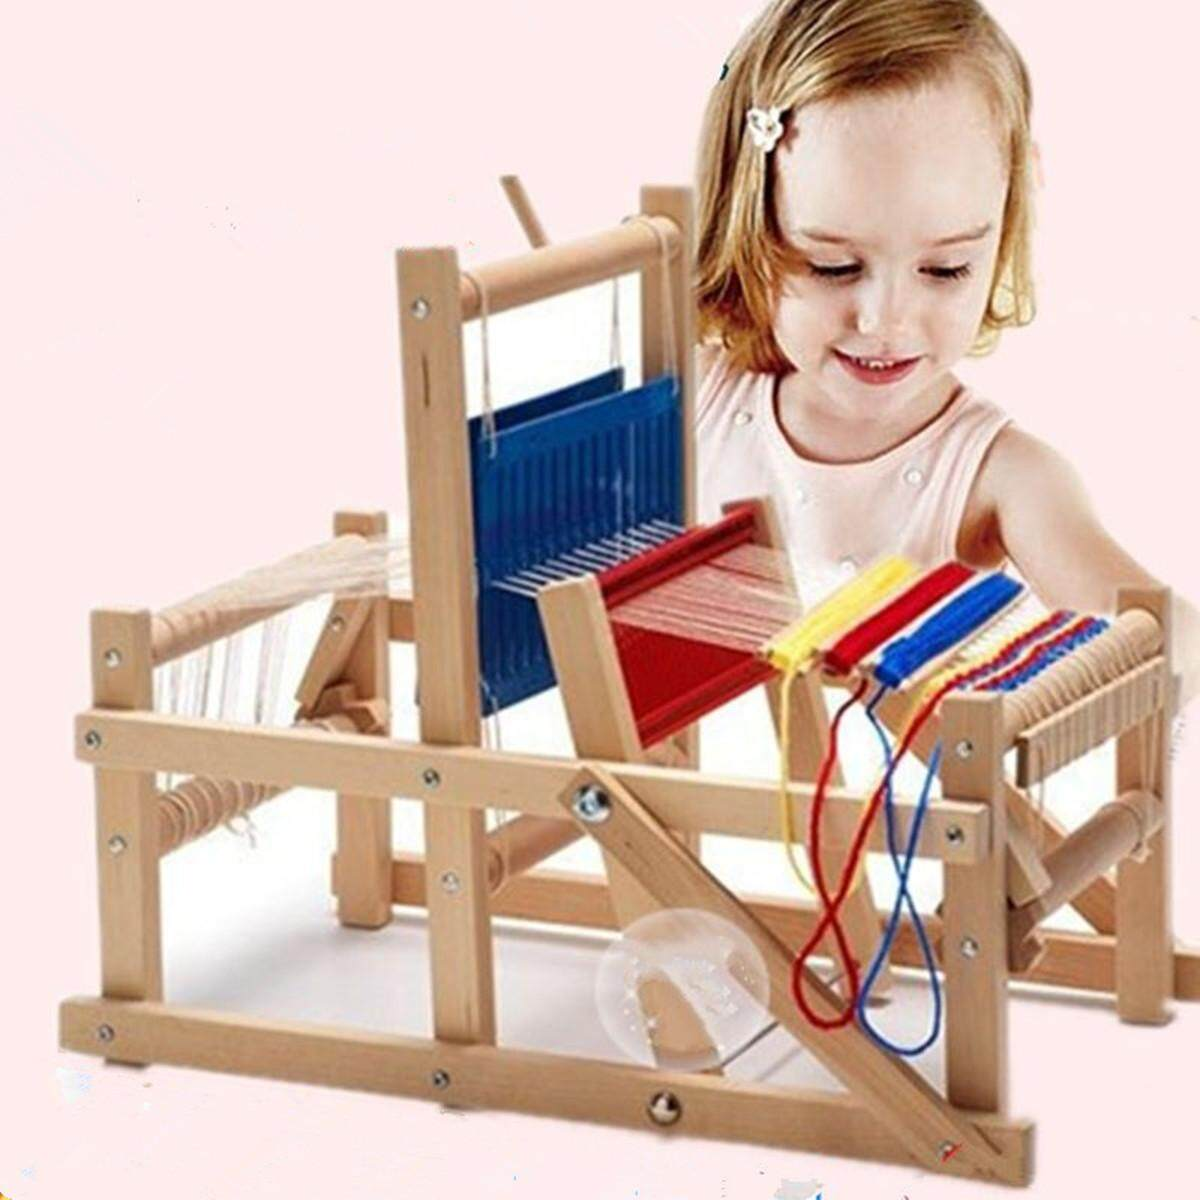 Wooden Traditional Weaving Loom Educational Craft Baby Art Toys High Quality By Elec Mall.